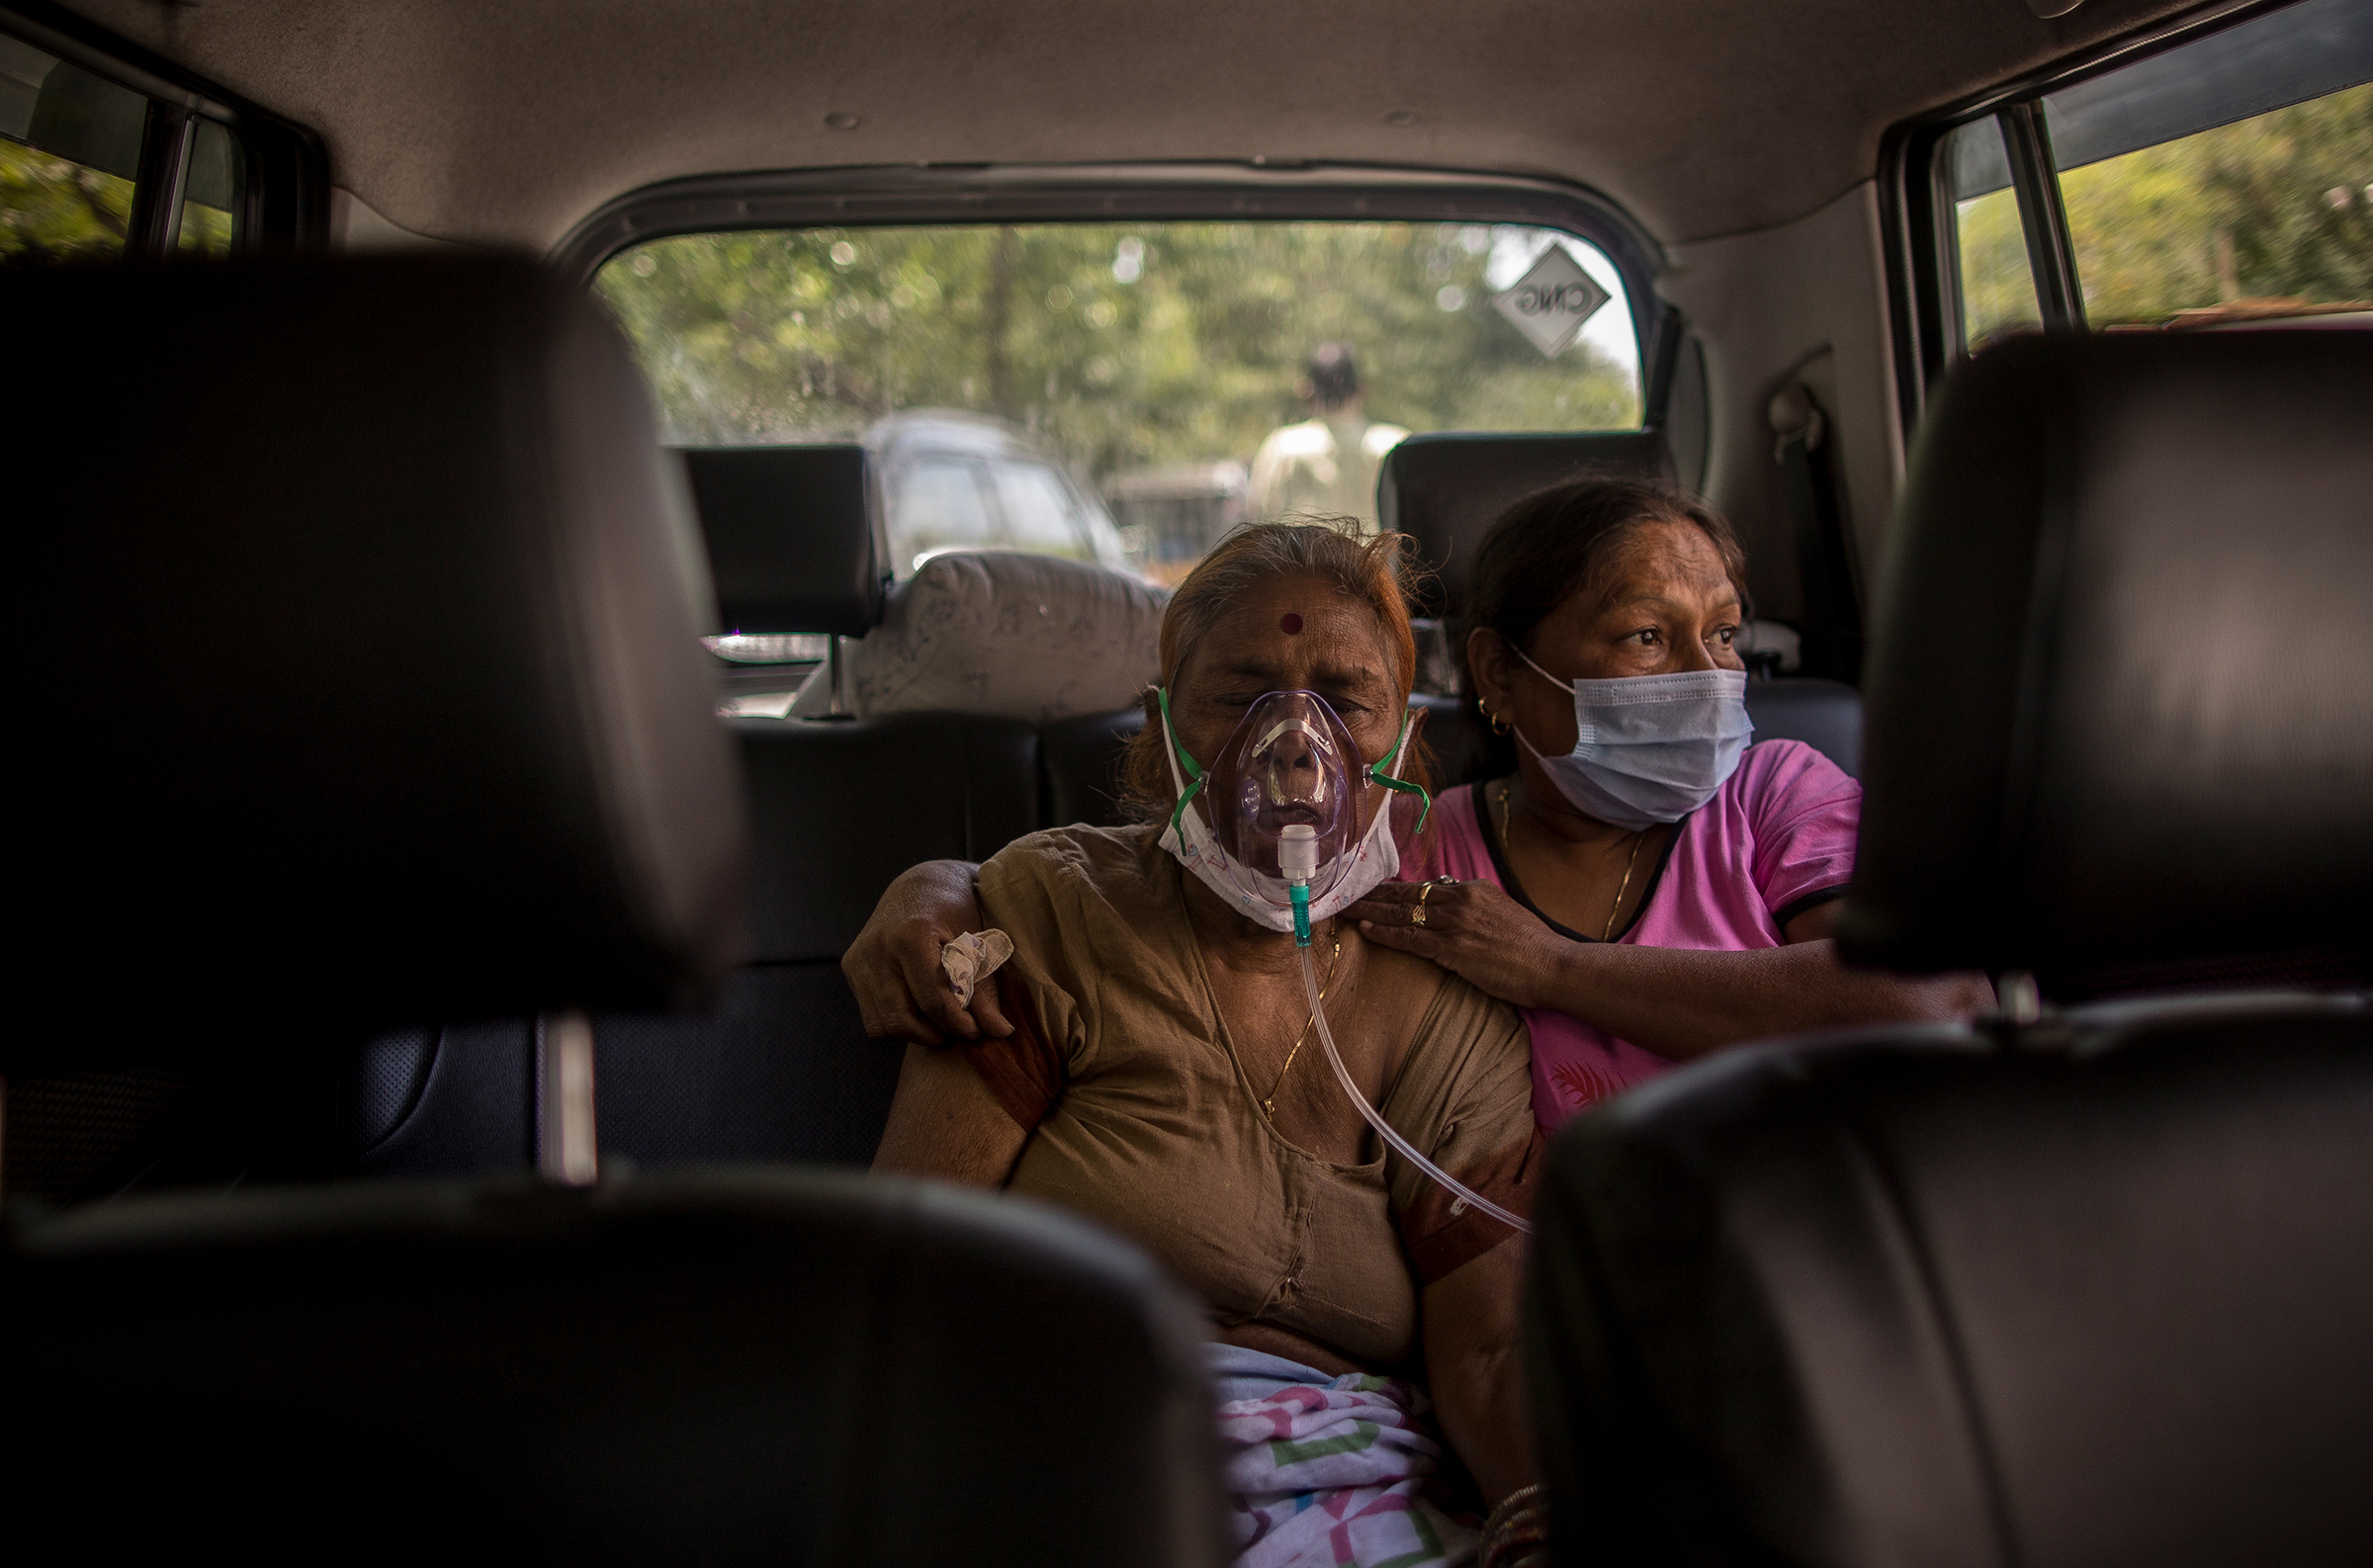 A woman suffering from COVID-19 receives oxygen in New Delhi on April 24, 2021.